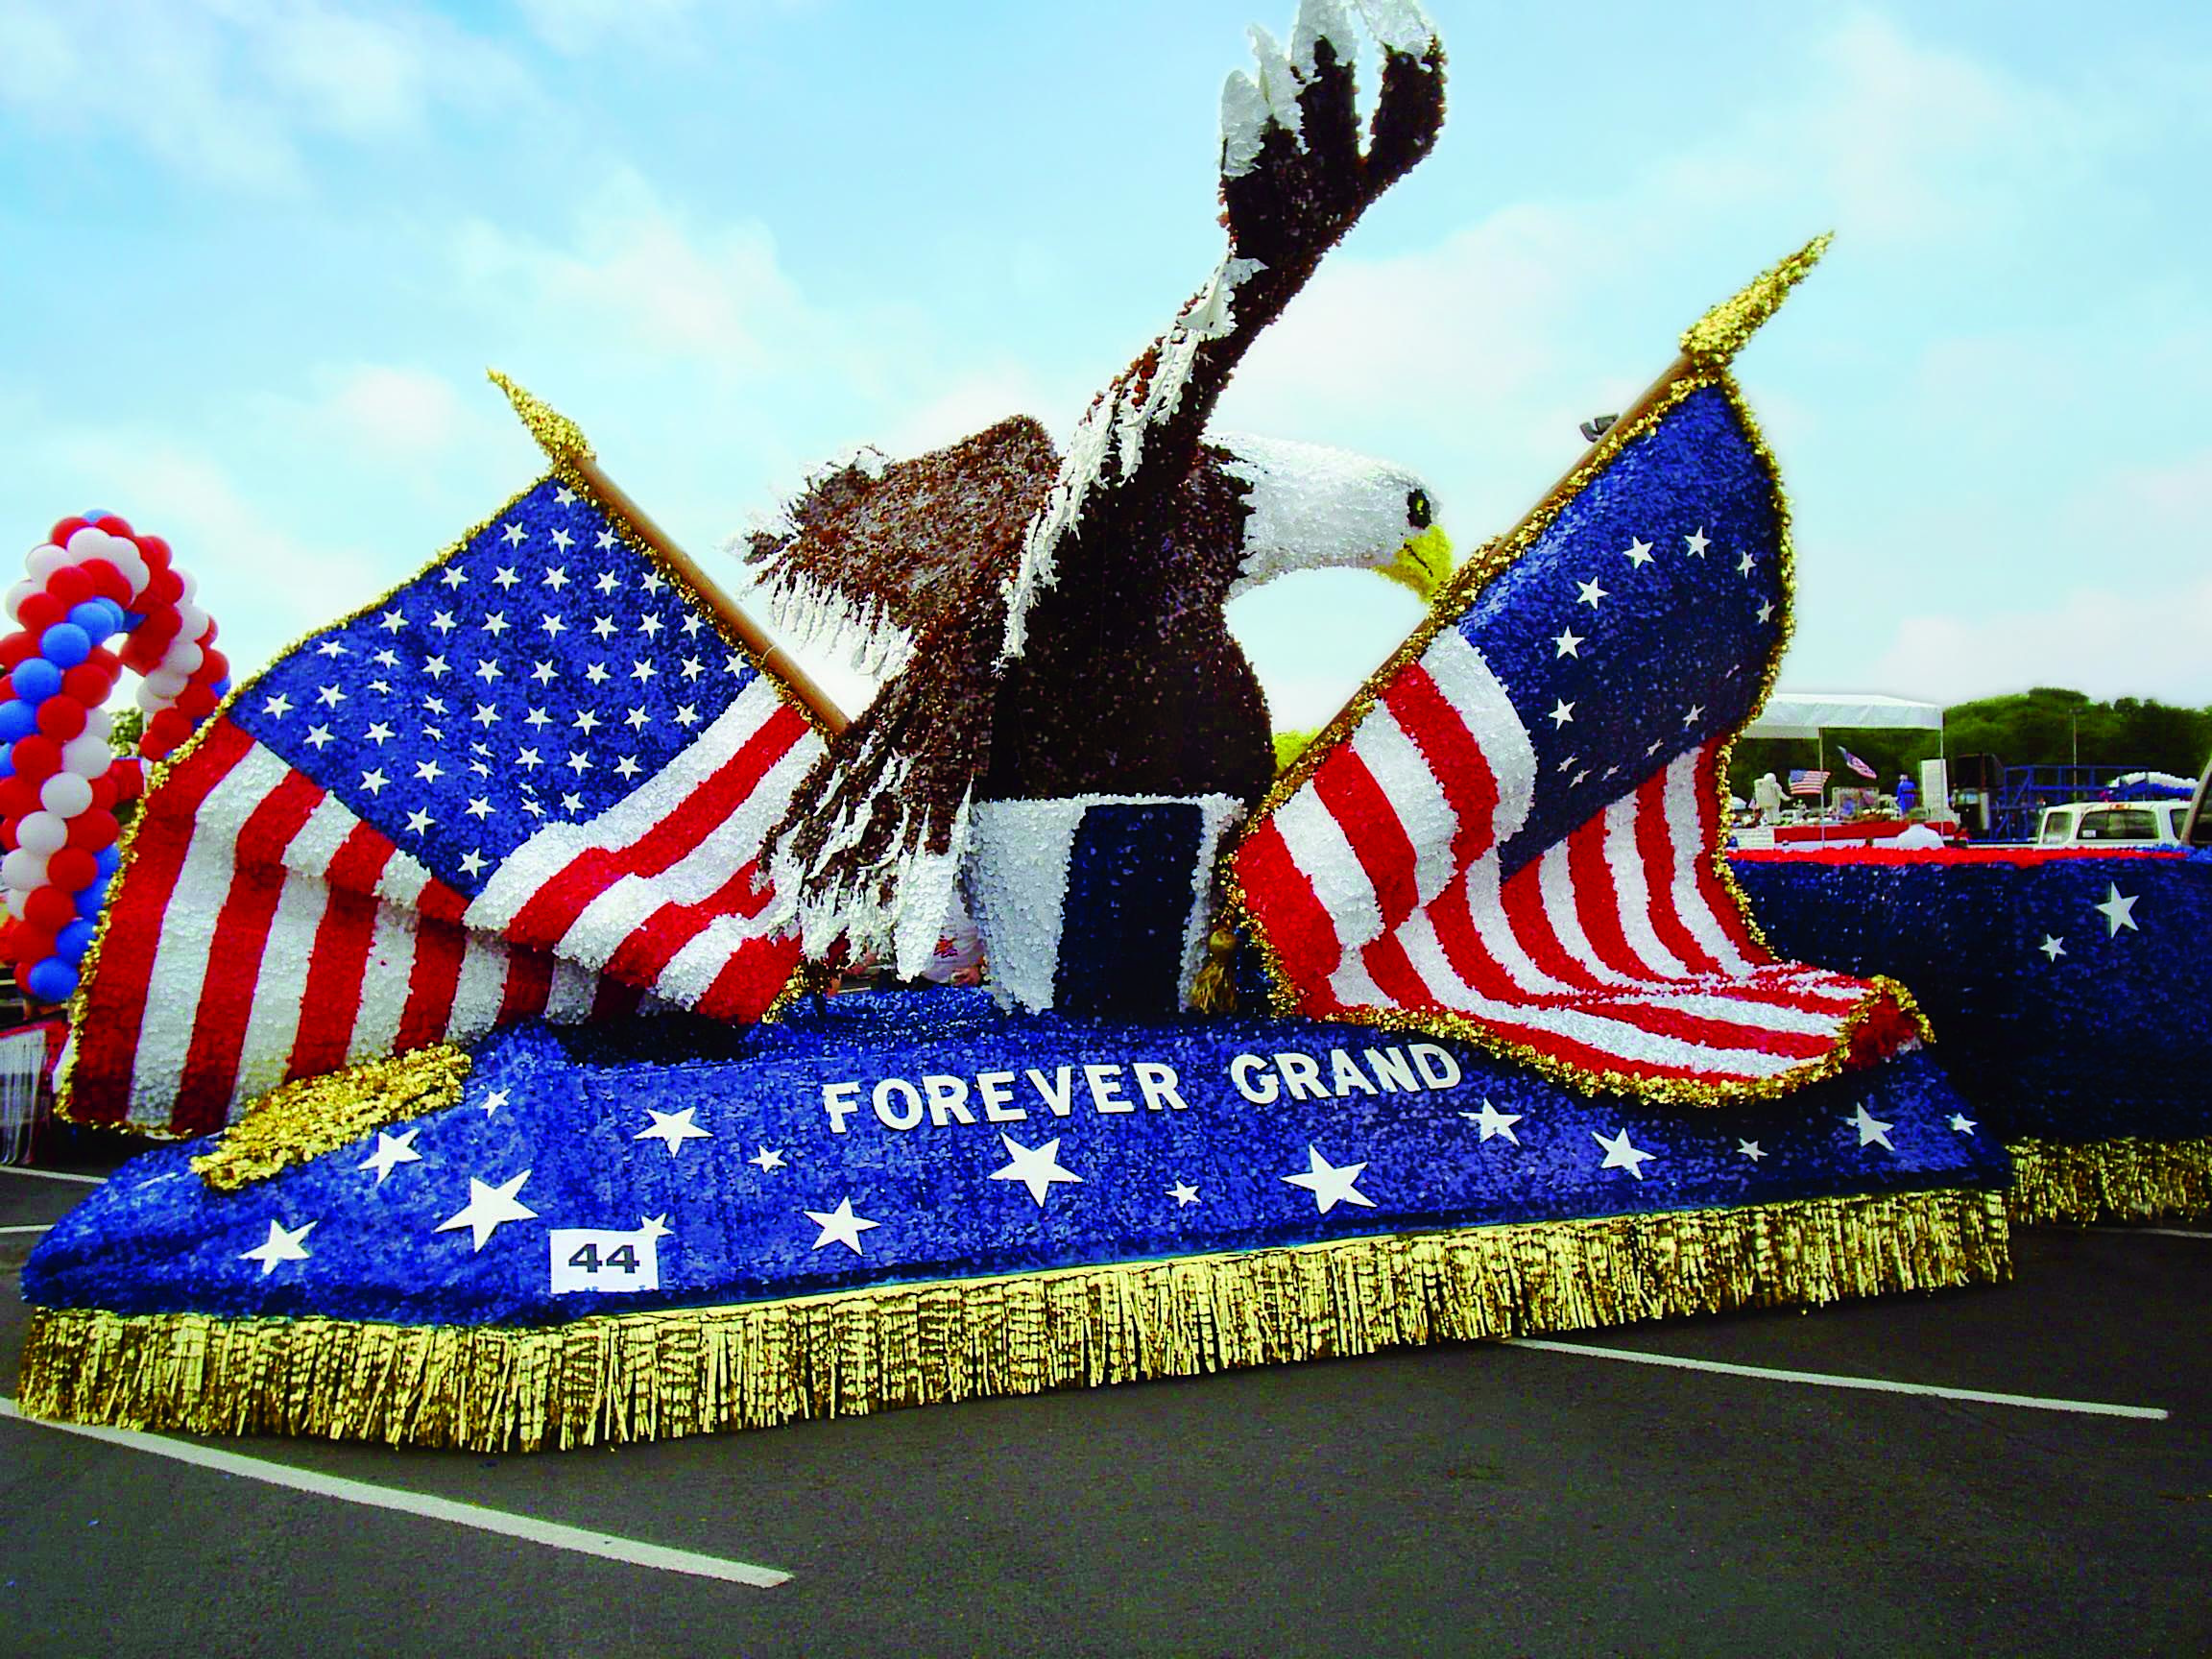 Flags & Eagle Parade Float Create Unique 4th Of July